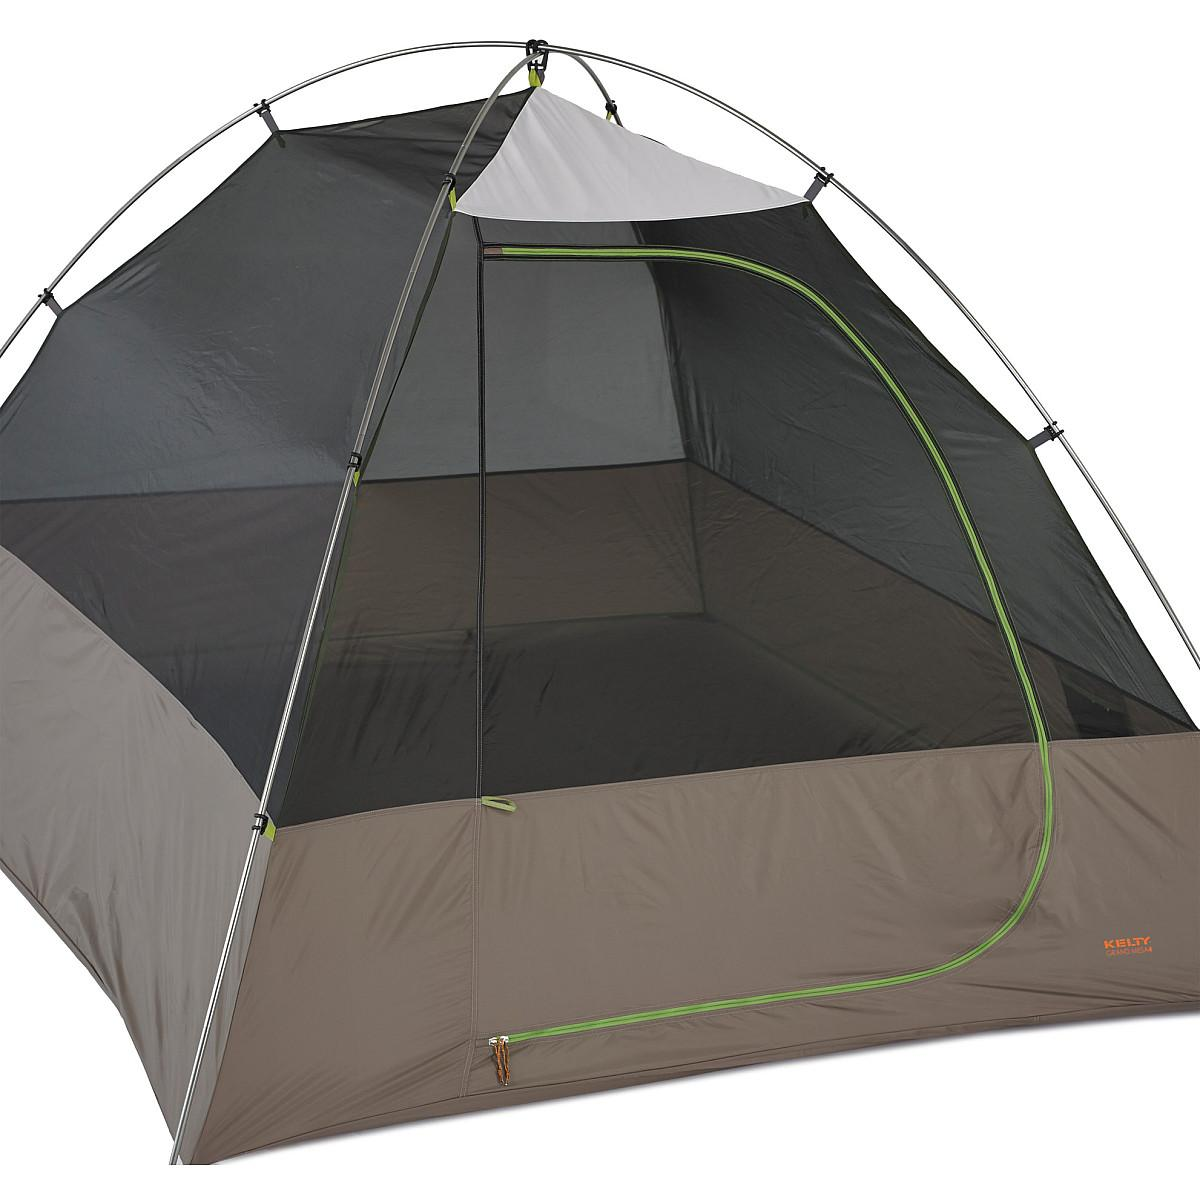 KELTY GRAND MESA 4-PERSON FREESTANDING TENT  sc 1 st  eBay & KELTY GRAND MESA 4-PERSON FREESTANDING TENT | eBay